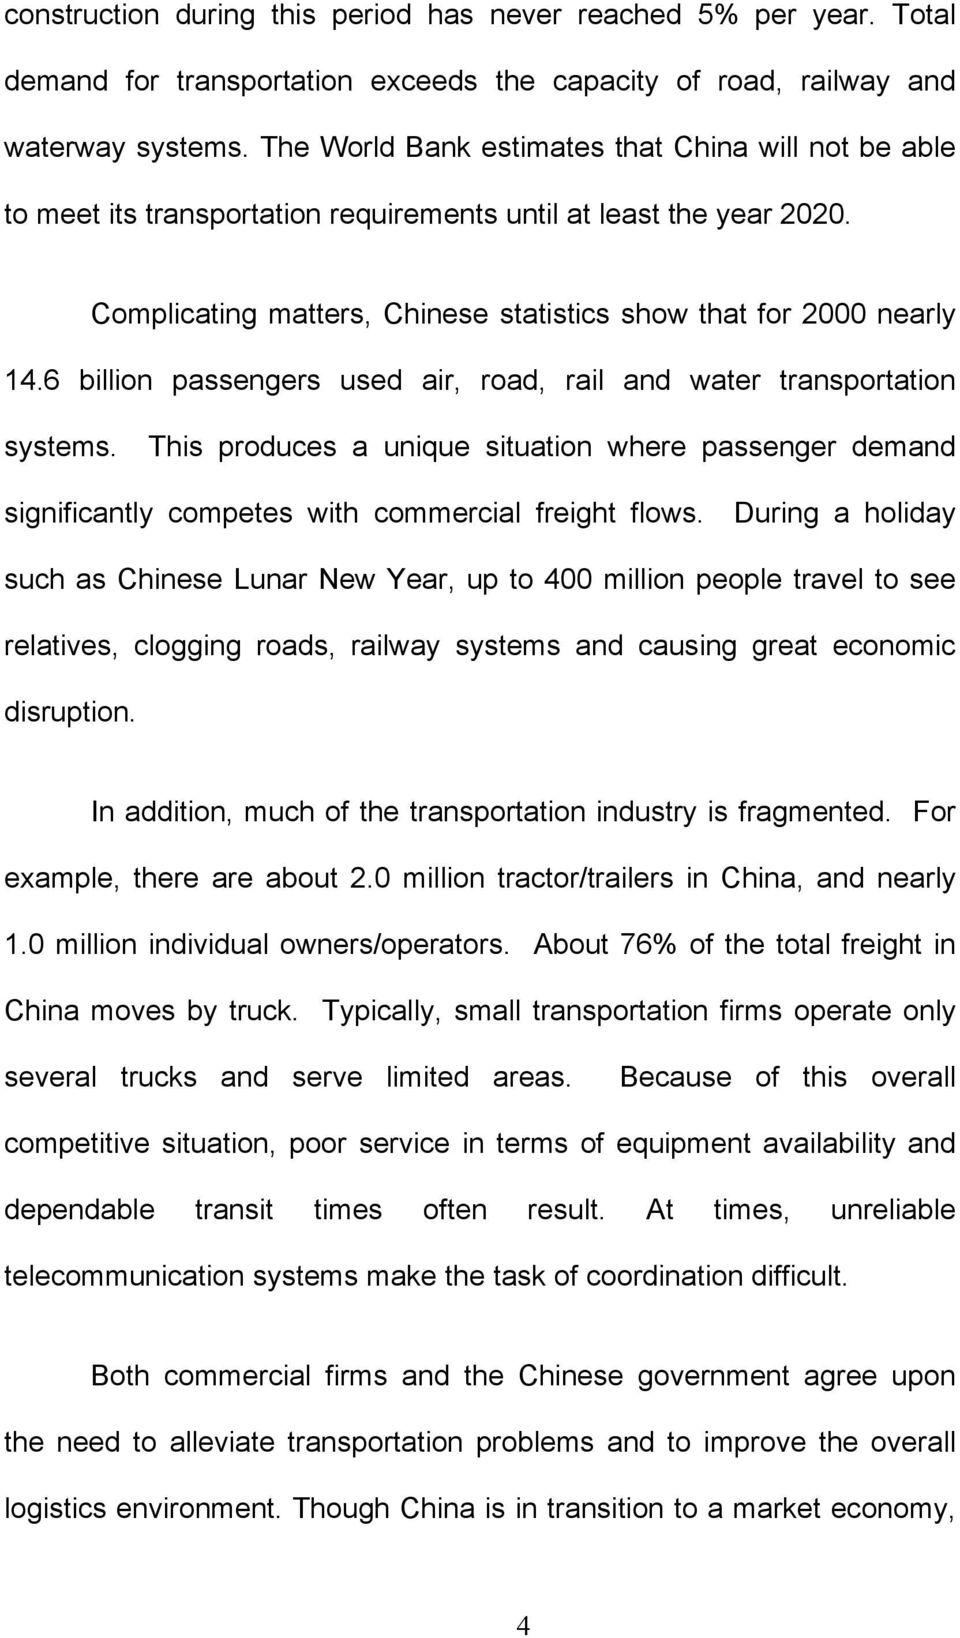 6 billion passengers used air, road, rail and water transportation systems. This produces a unique situation where passenger demand significantly competes with commercial freight flows.